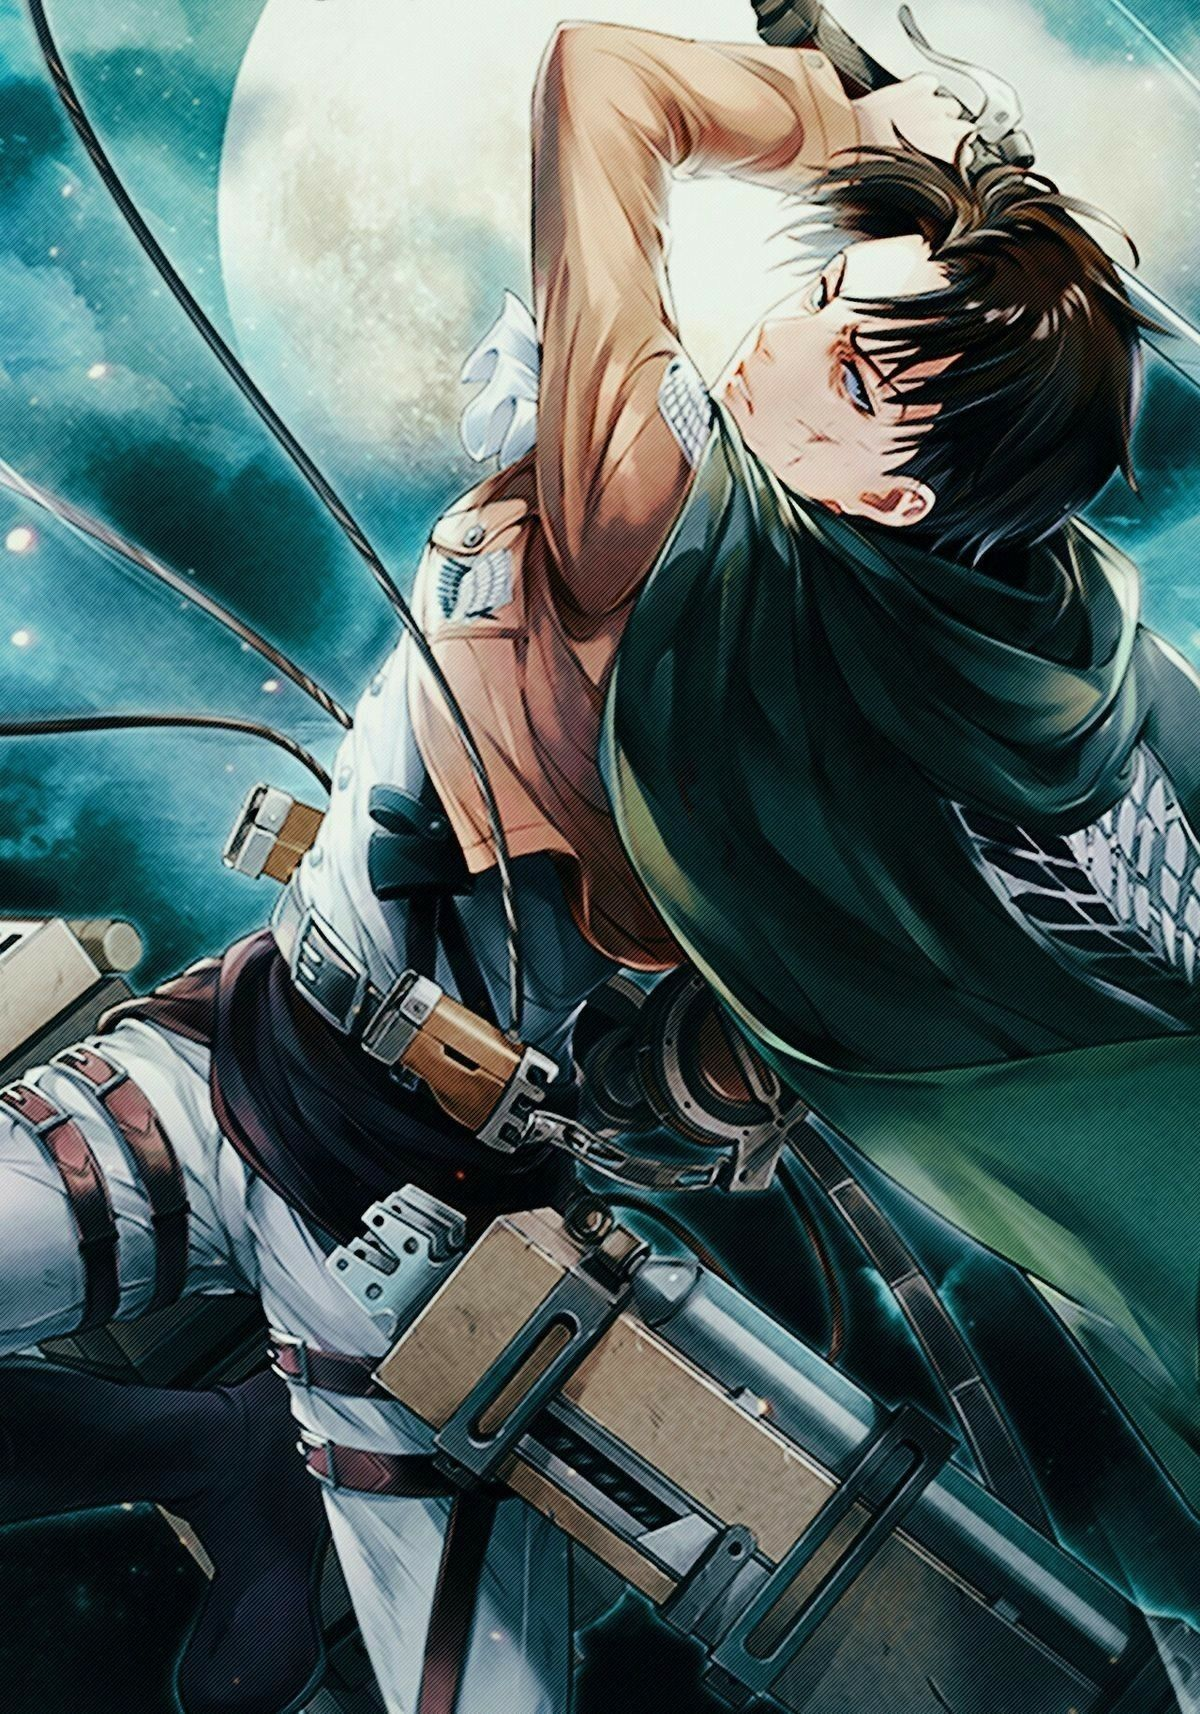 Cartoon ,anime ,manga ,series ,attack on titan ,levi ackerman wallpapers and more can be download for mobile, desktop, tablet and other devices. Pin on AN!Mê